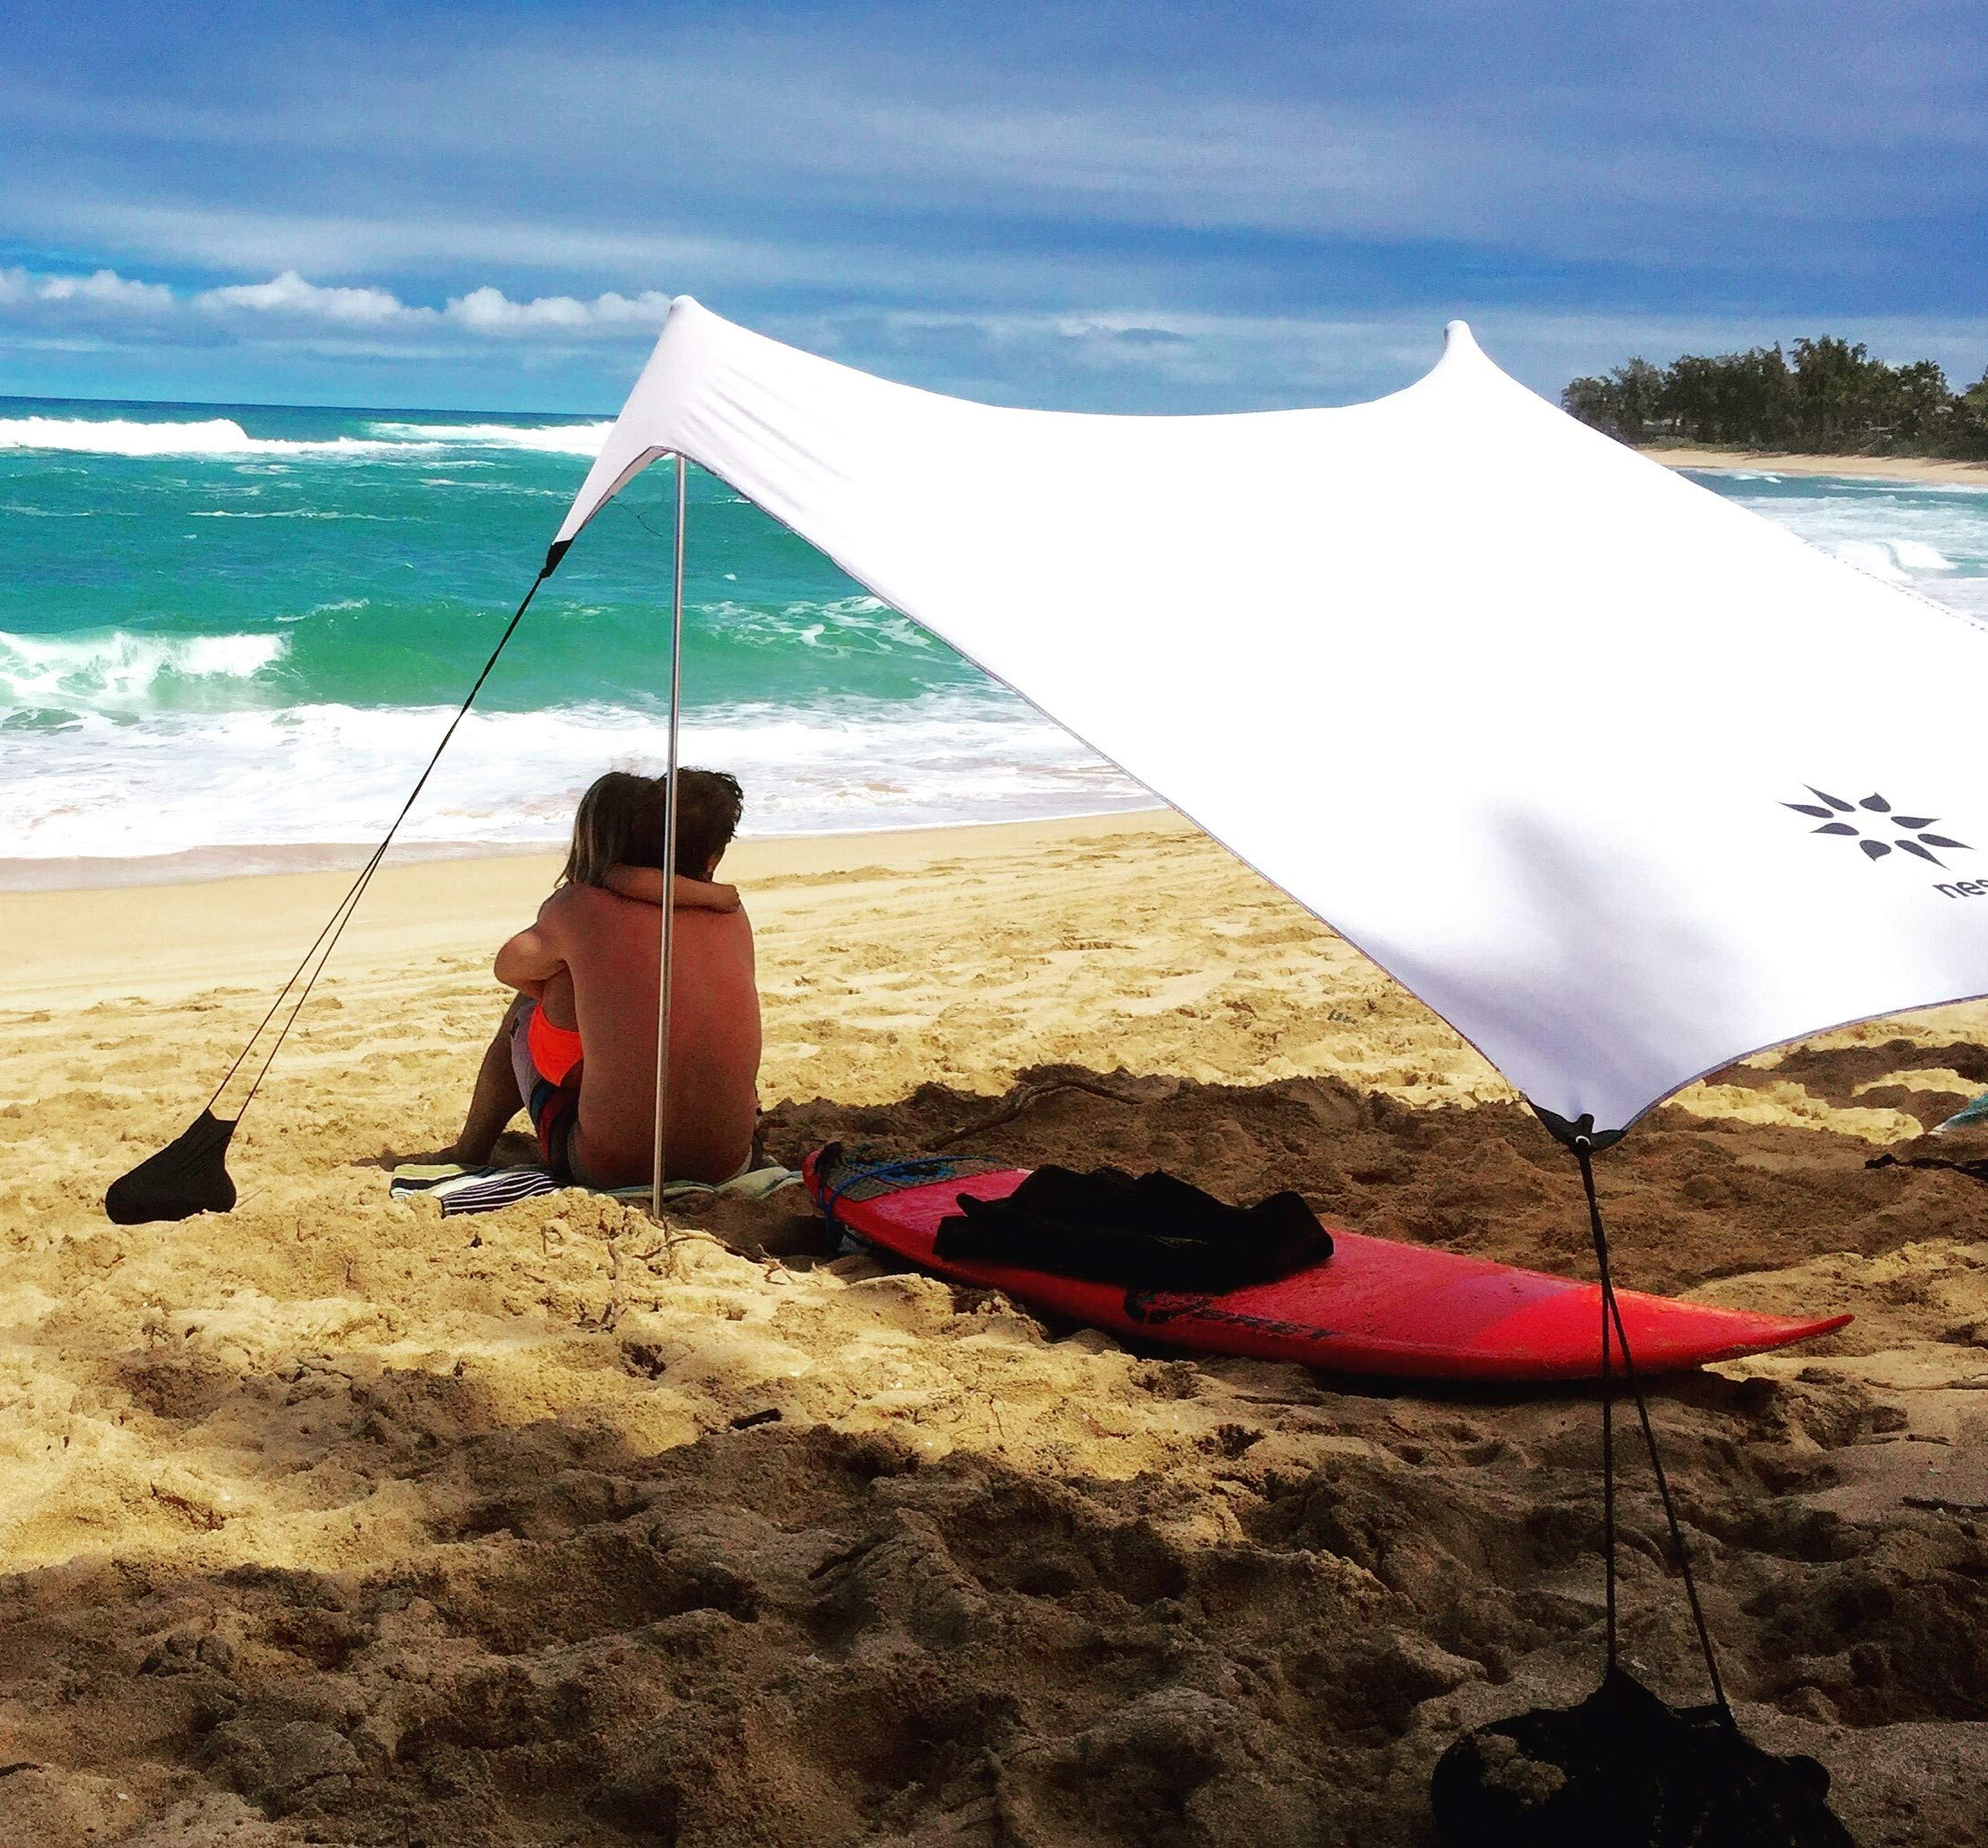 Neso Tents Beach Tent with Sand Anchor, Portable Canopy Sun Shelter, 7 x 7ft - Patented Reinforced Corners - White by Neso